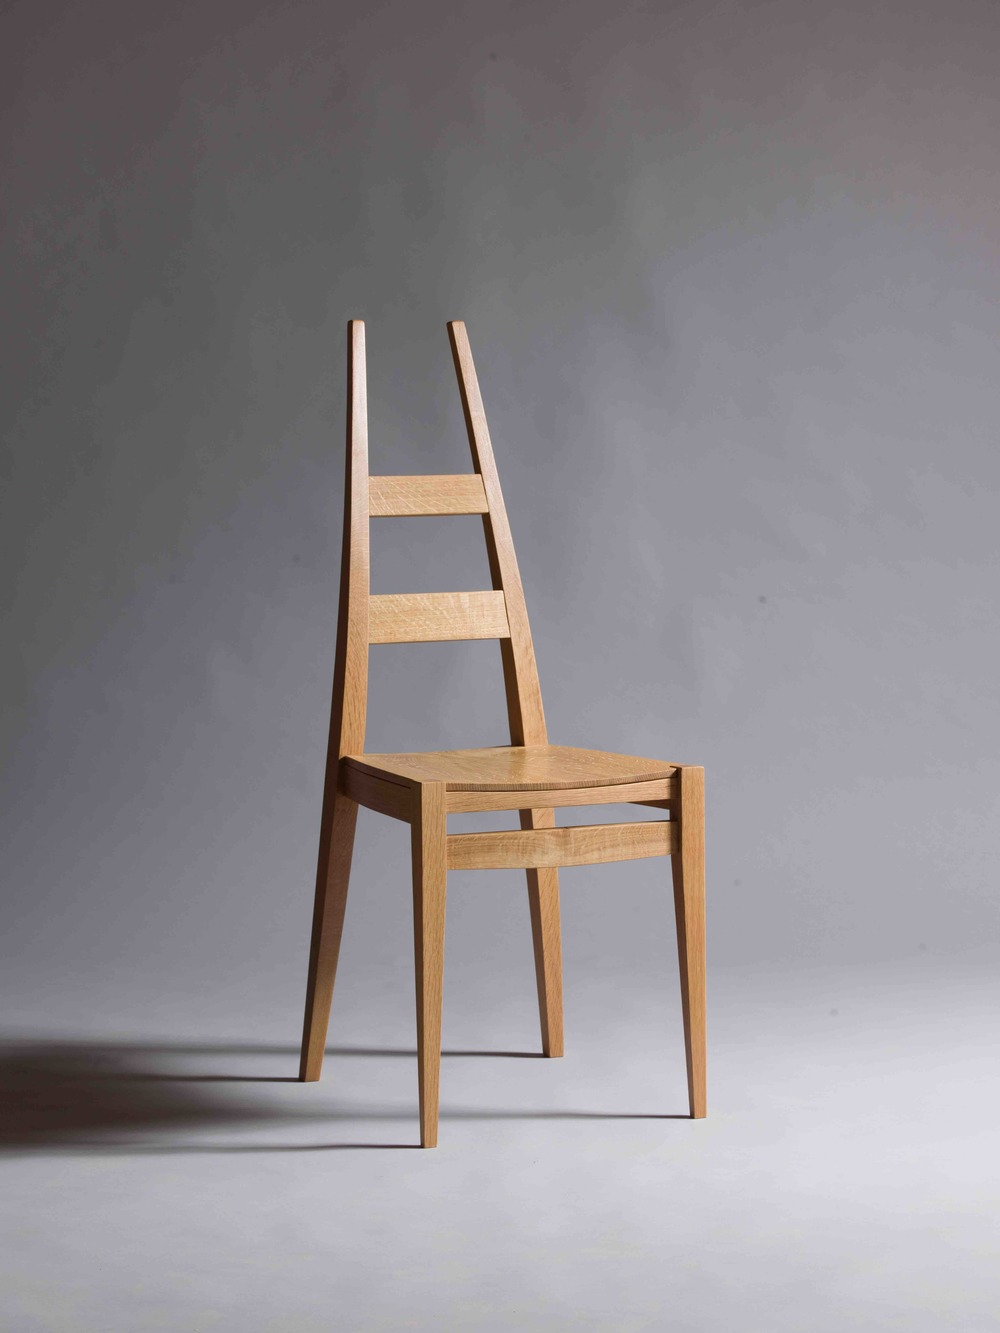 Oak Chair1 copy.jpg